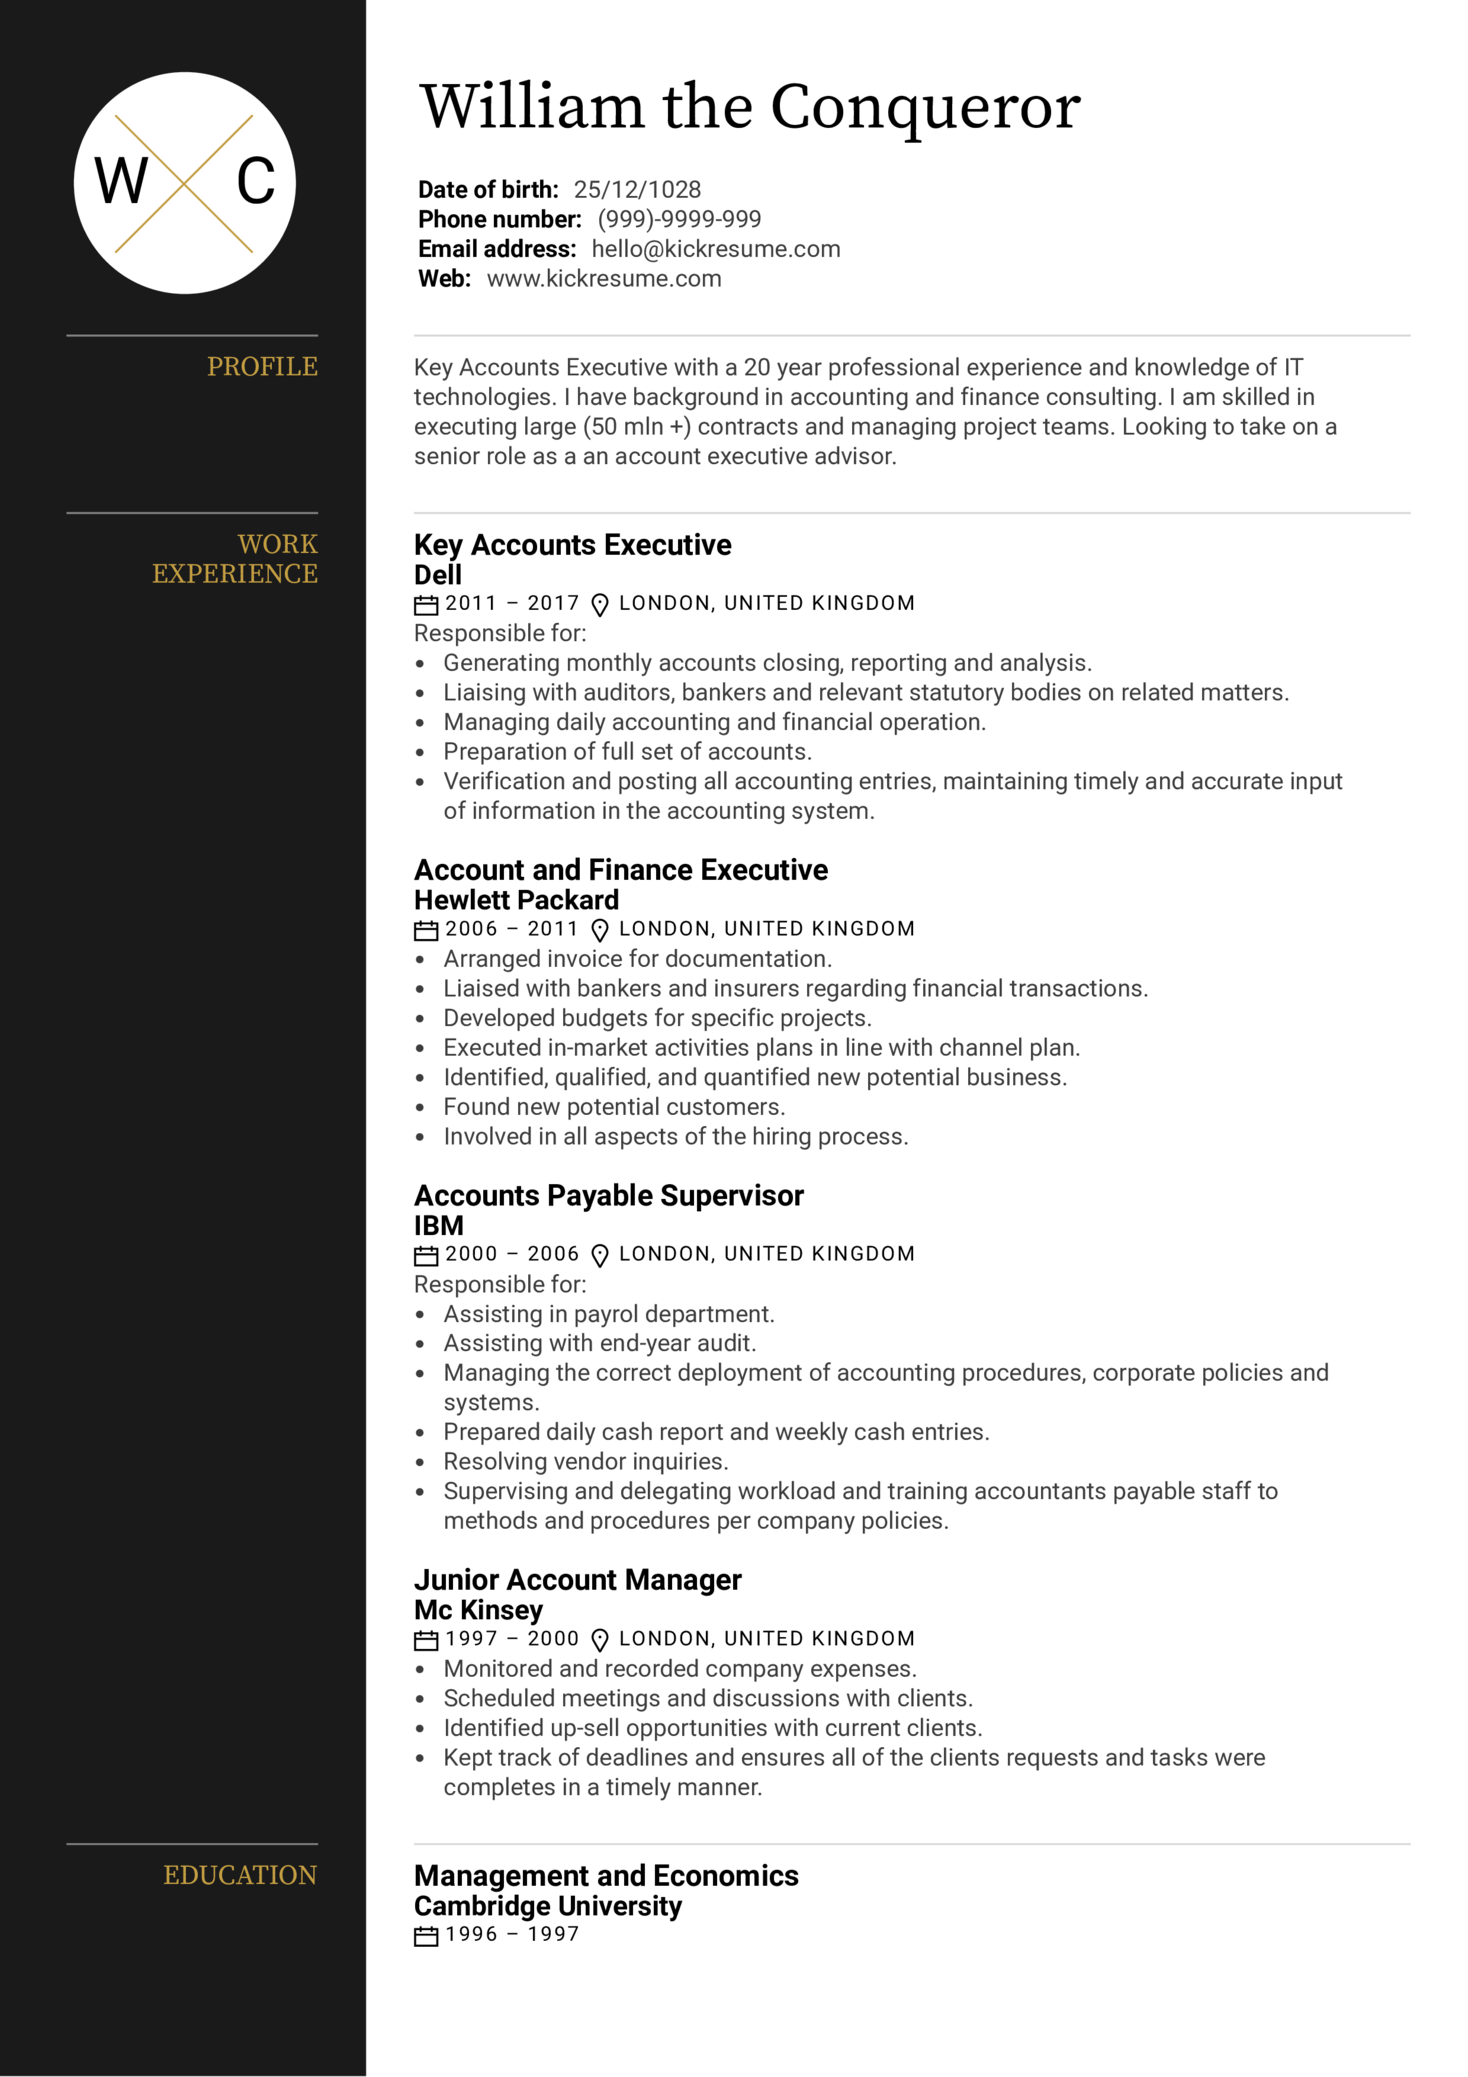 Executive Account Manager Resume Sample | Resume samples | Career ...